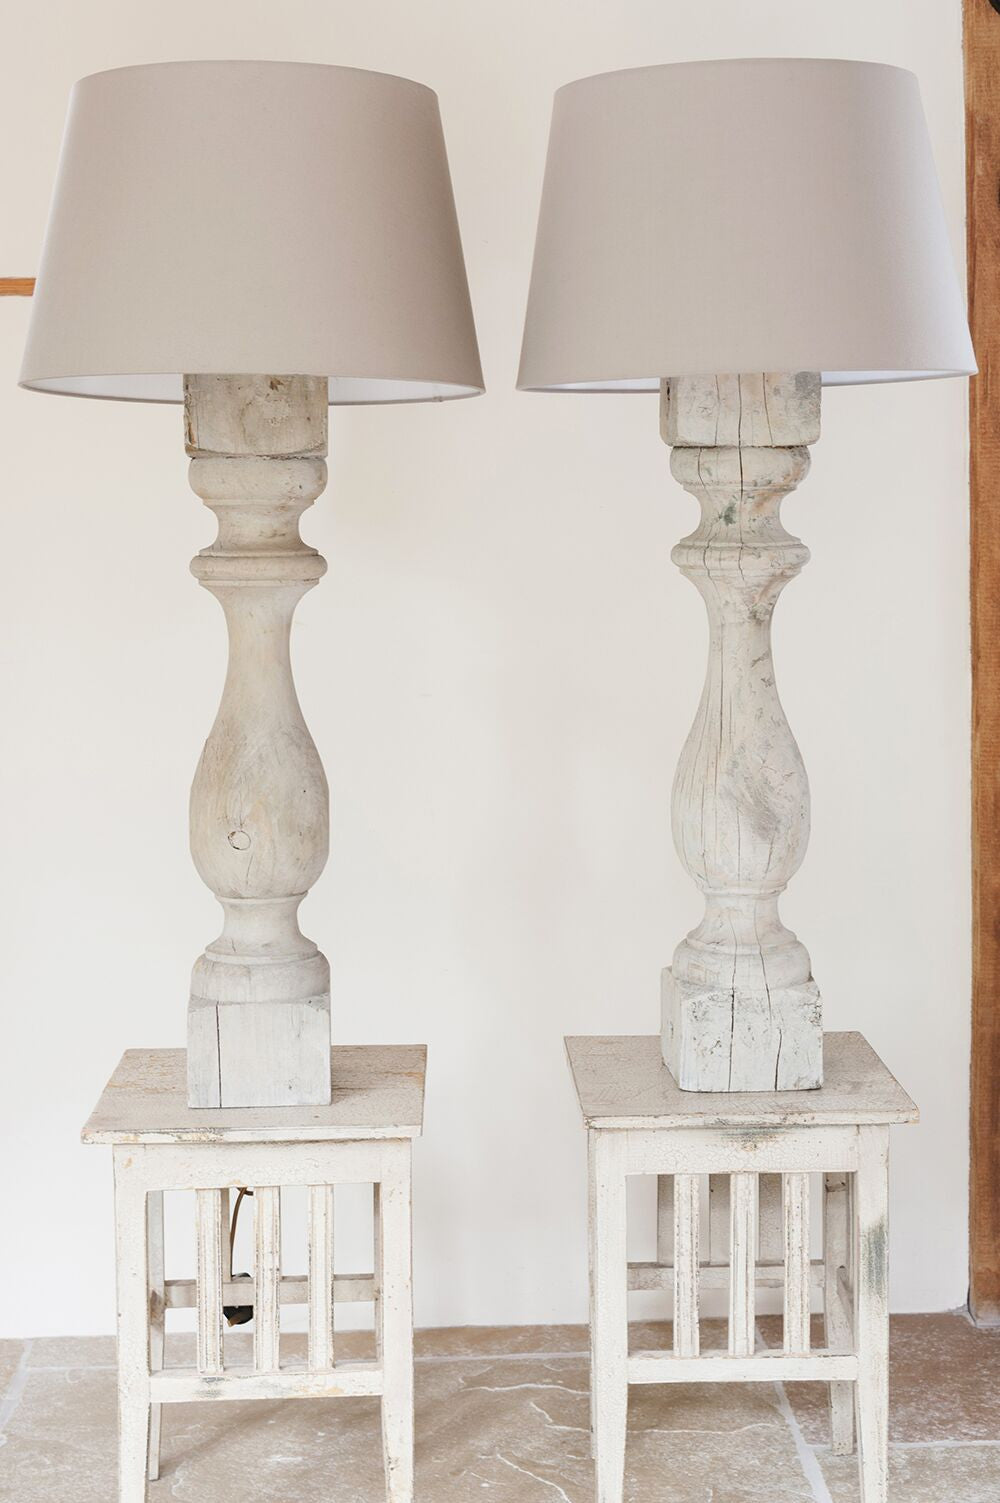 Antique wooden table lamps - Pair Tall Antique French Wooden Baluster Table Lamps Decorative Antiques Uk 1